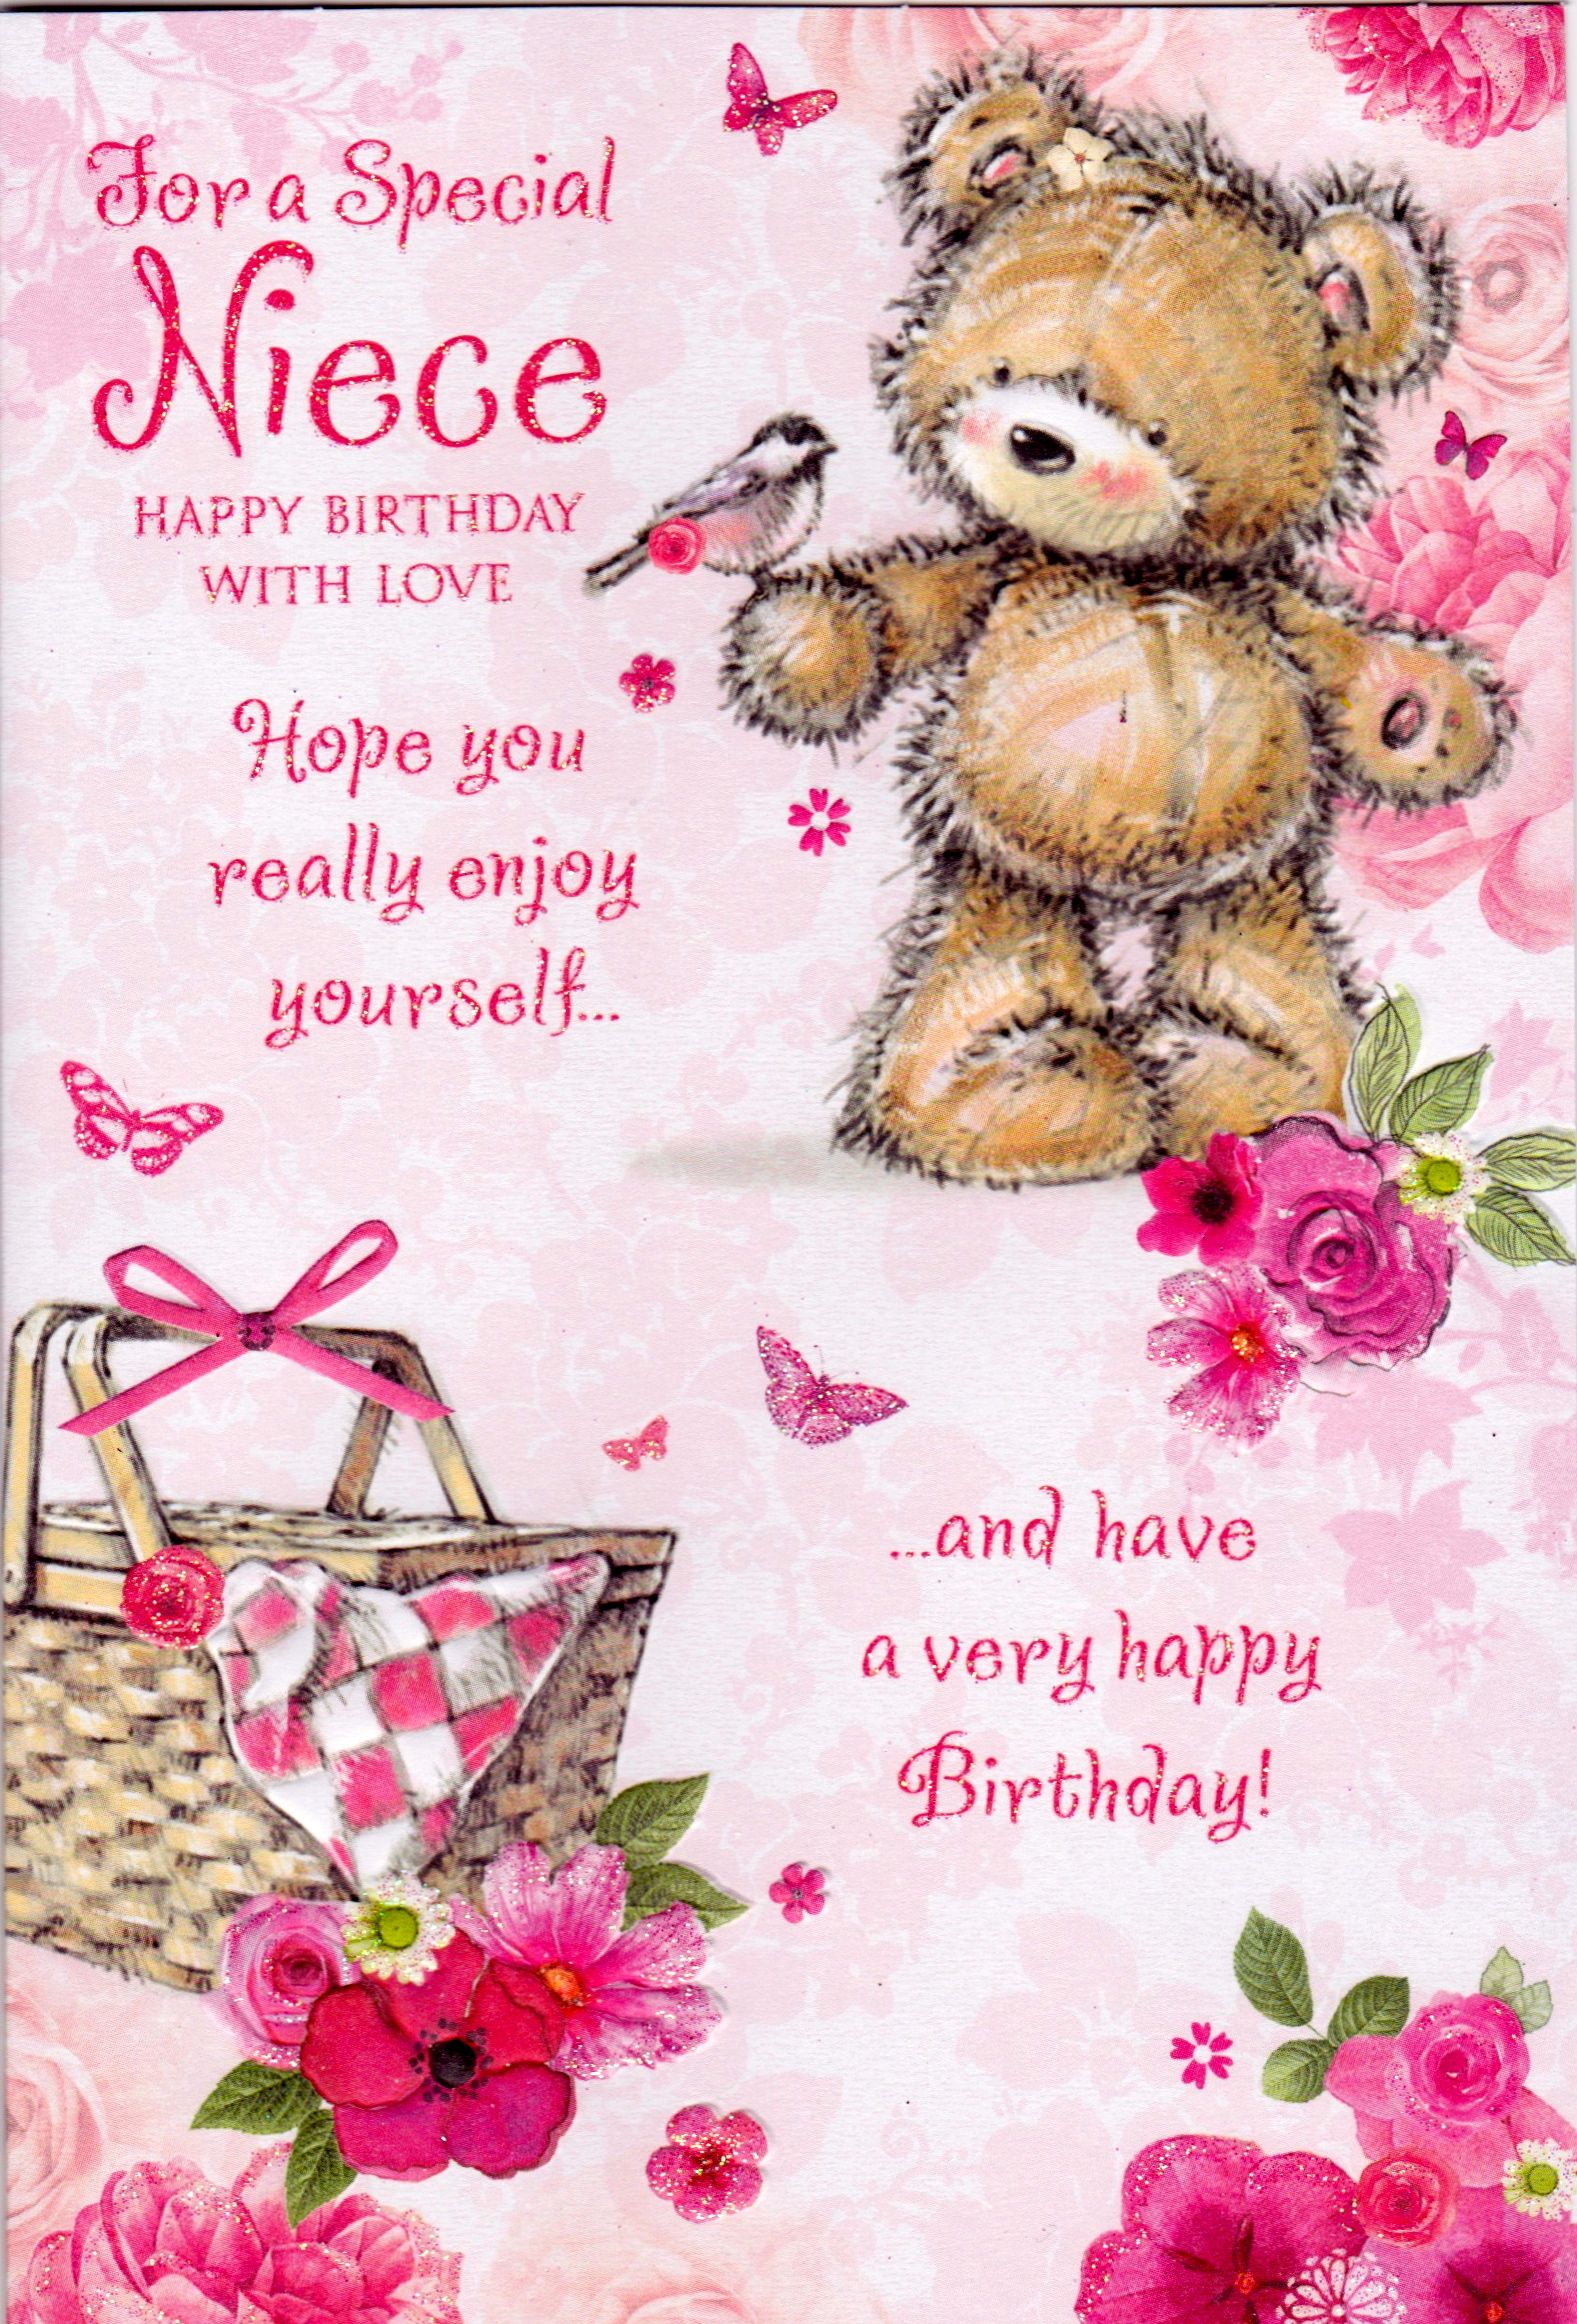 birthday card sayings for niece ; 3bd37ec8844d03344a710214bf13ded6